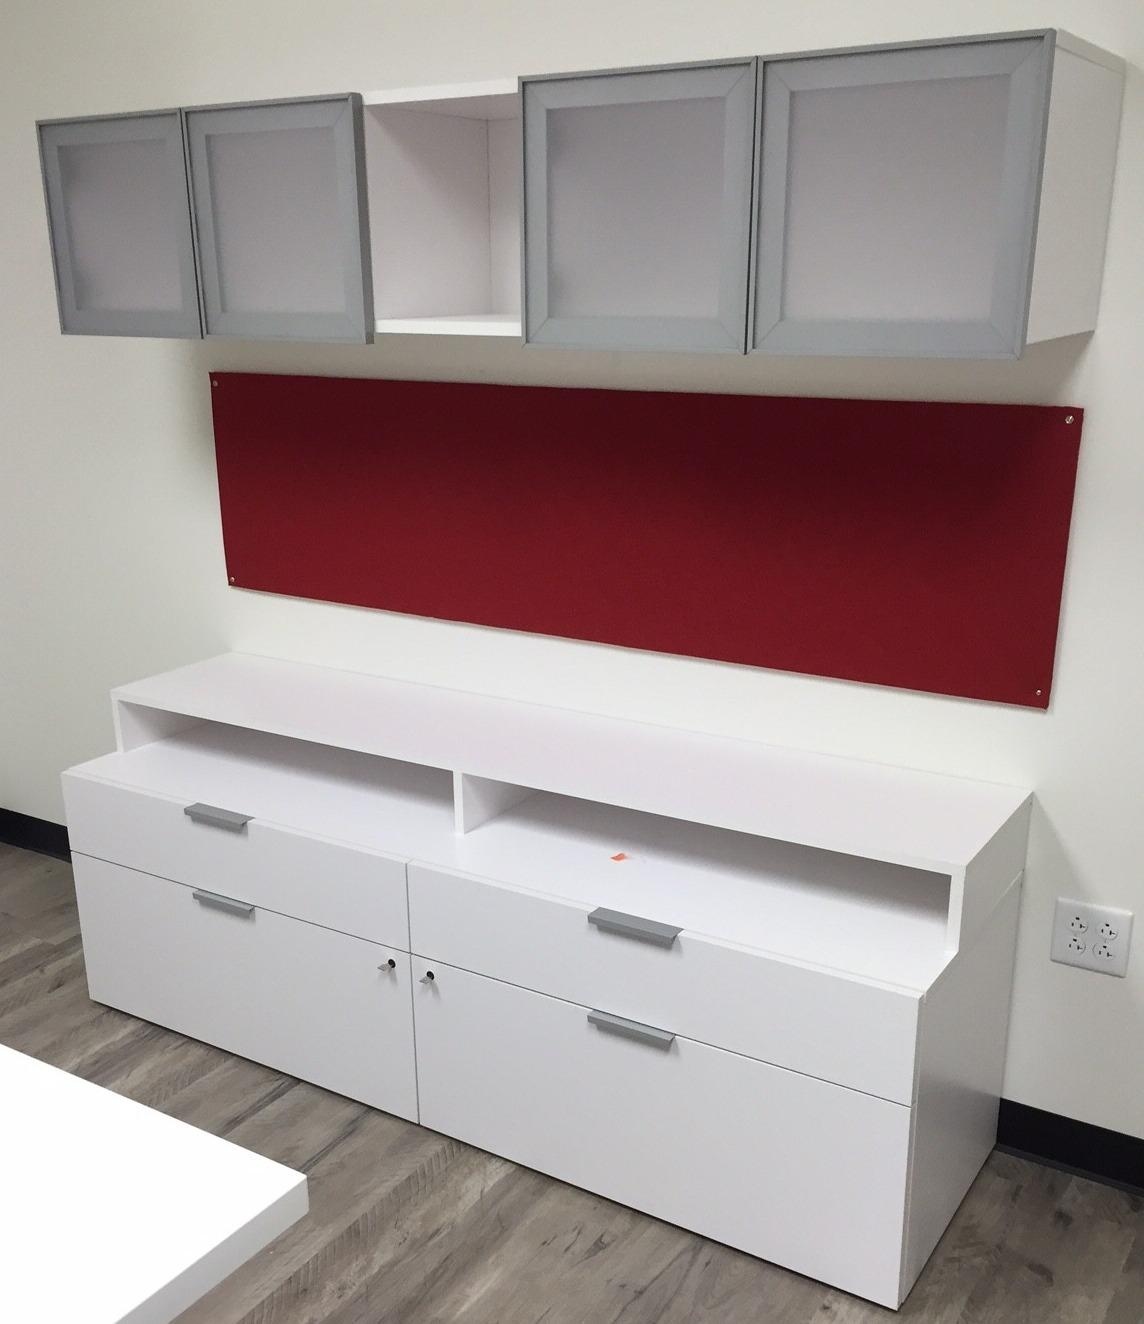 Marvelous Office Furniture Warehouse Inc 117 2Nd St Tupelo Ms Home Interior And Landscaping Spoatsignezvosmurscom